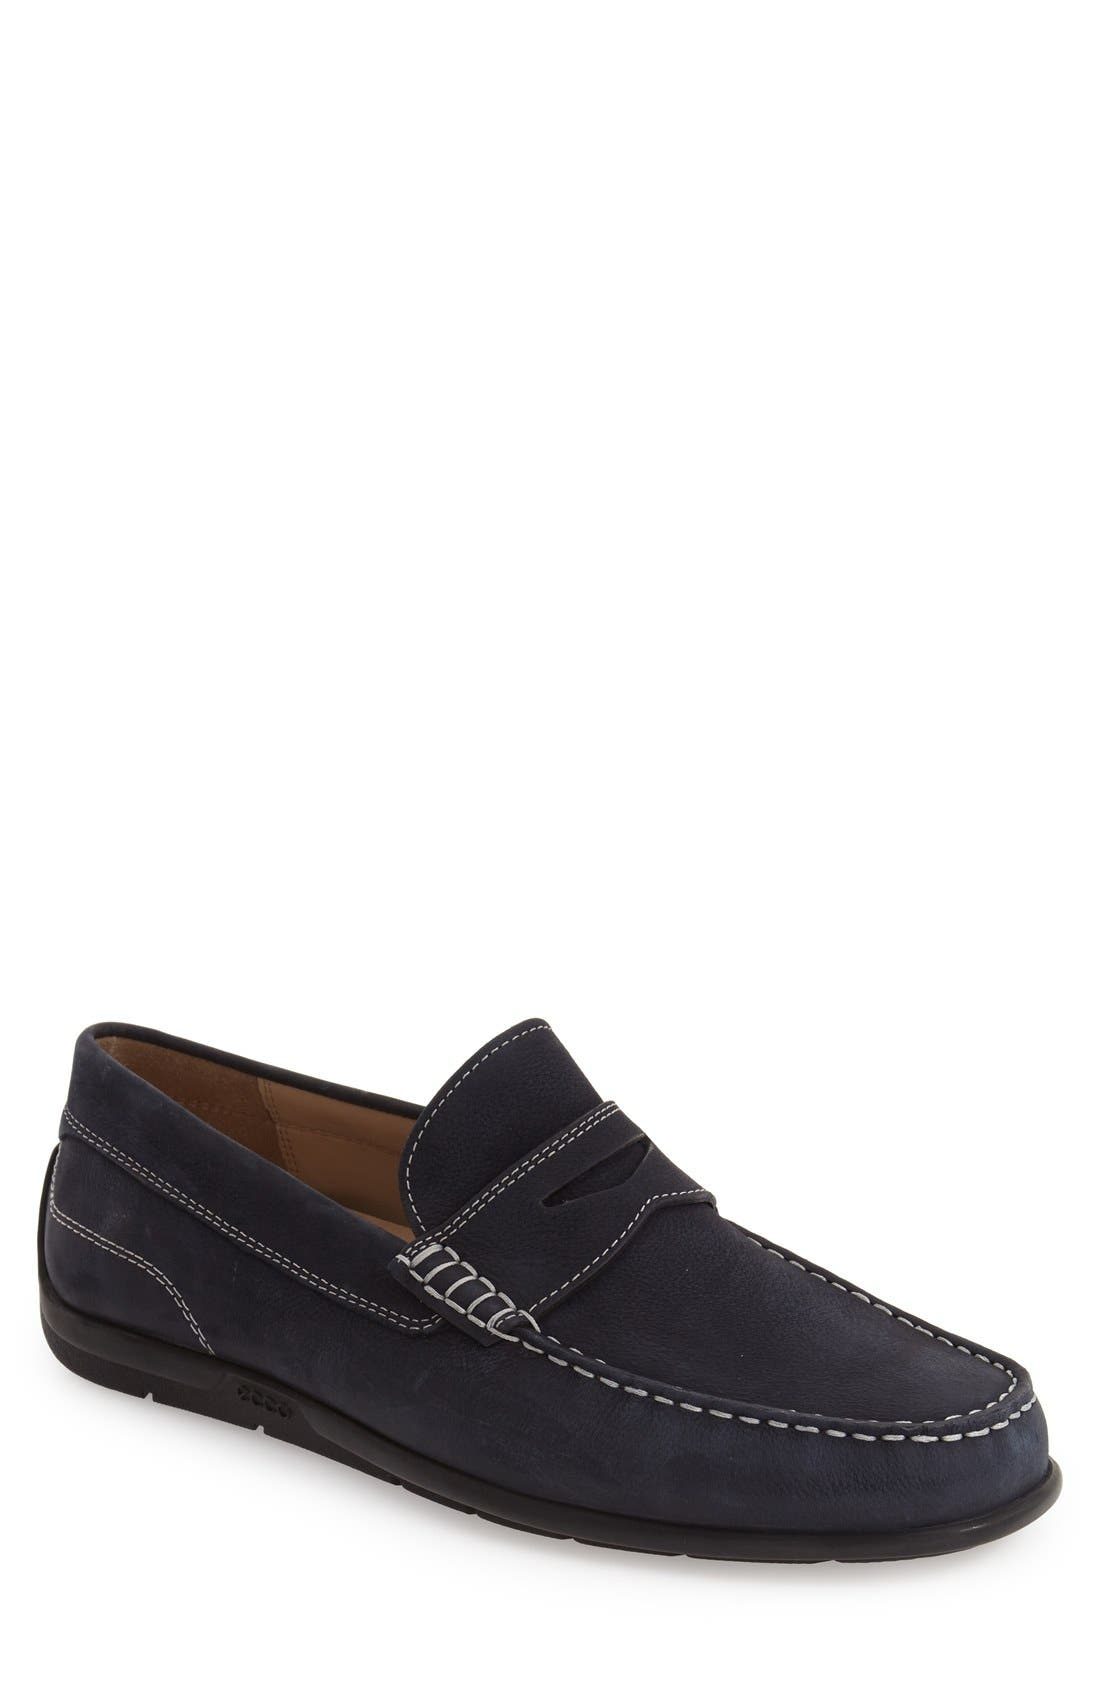 'Classic Moc 2.0' Penny Loafer,                         Main,                         color, Navy Leather